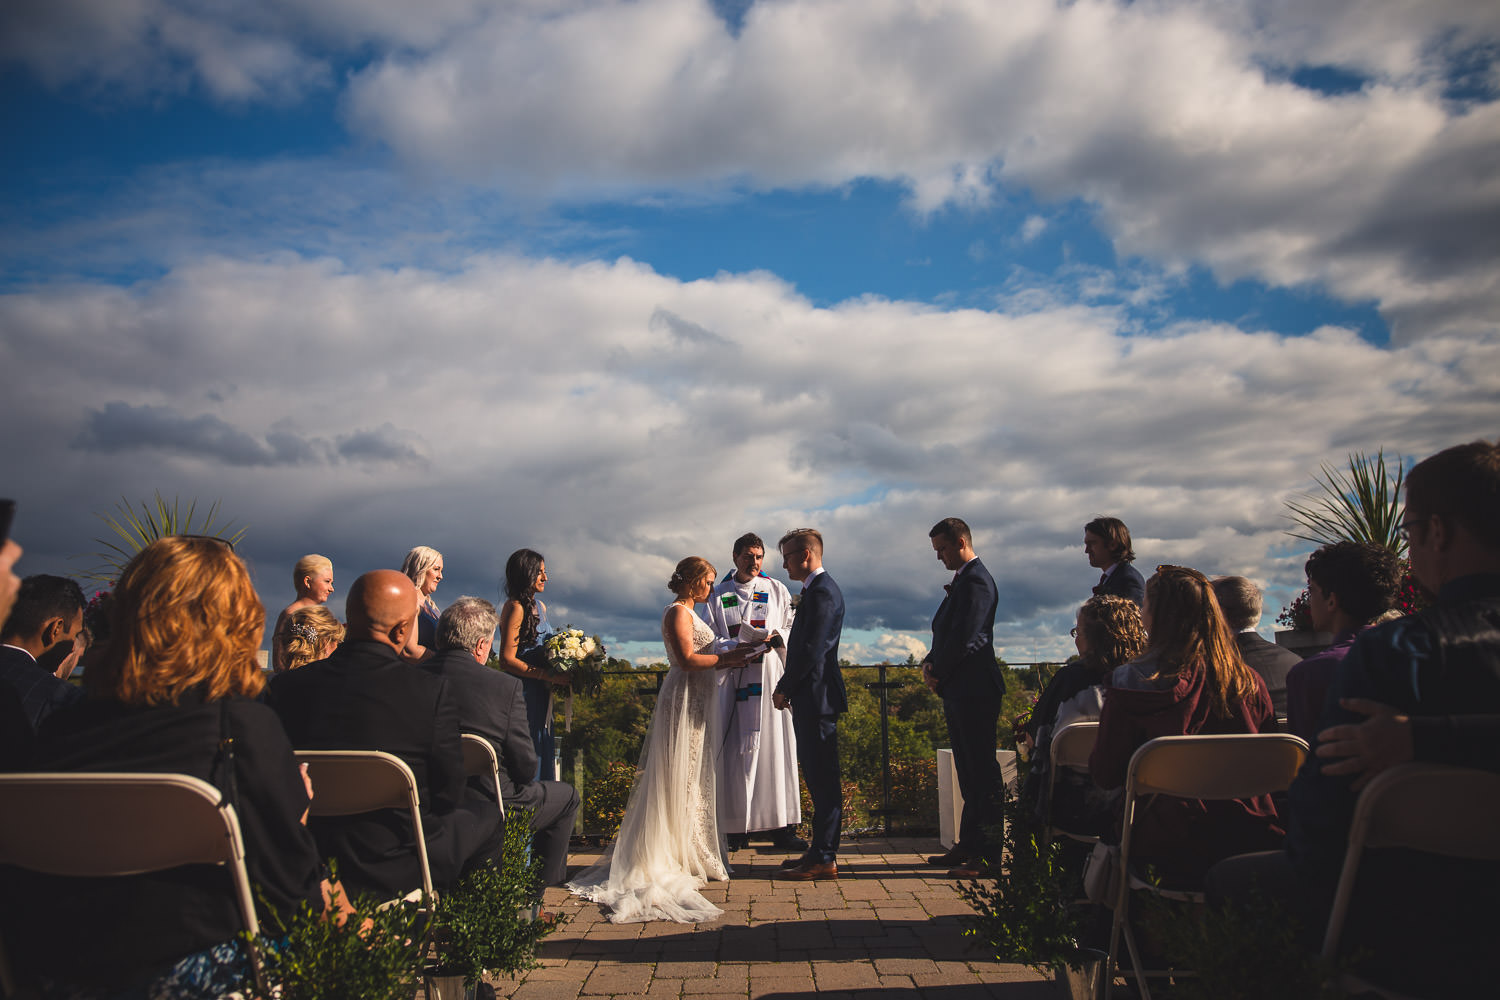 Wedding party stands at altar during ceremony under sunny skies